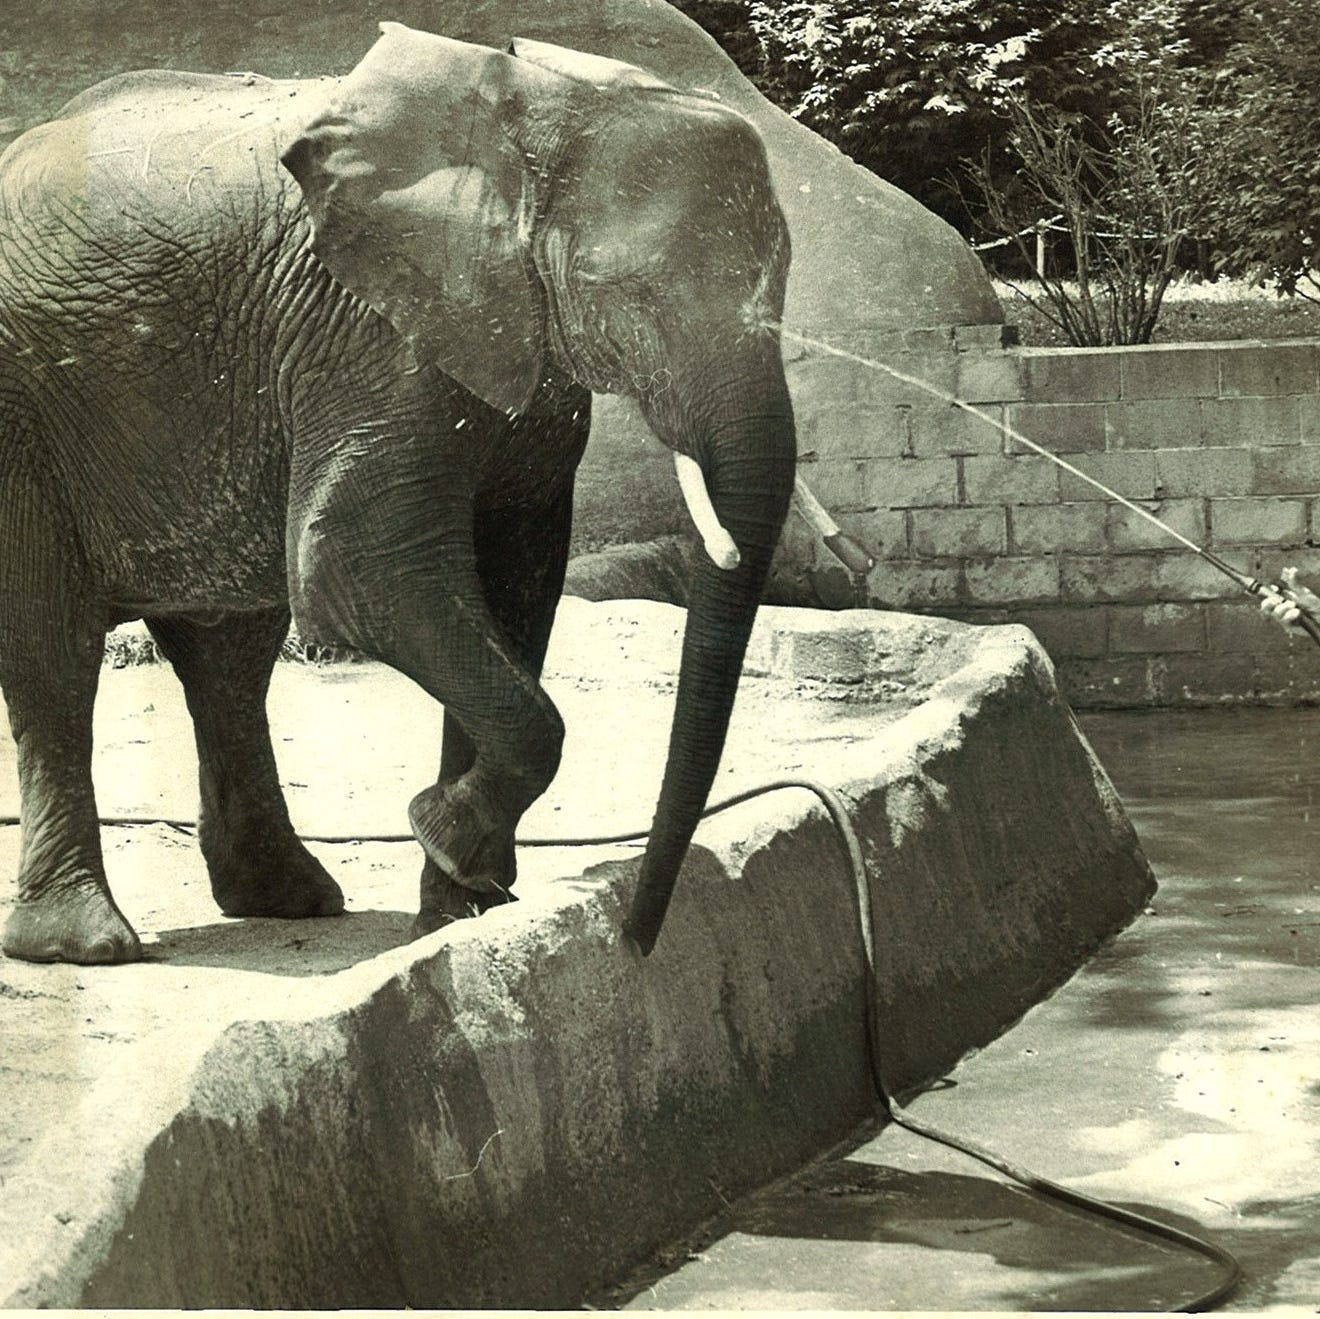 Indianapolis Zoo elephant deaths: Tombi appears safe for now, spokesperson says